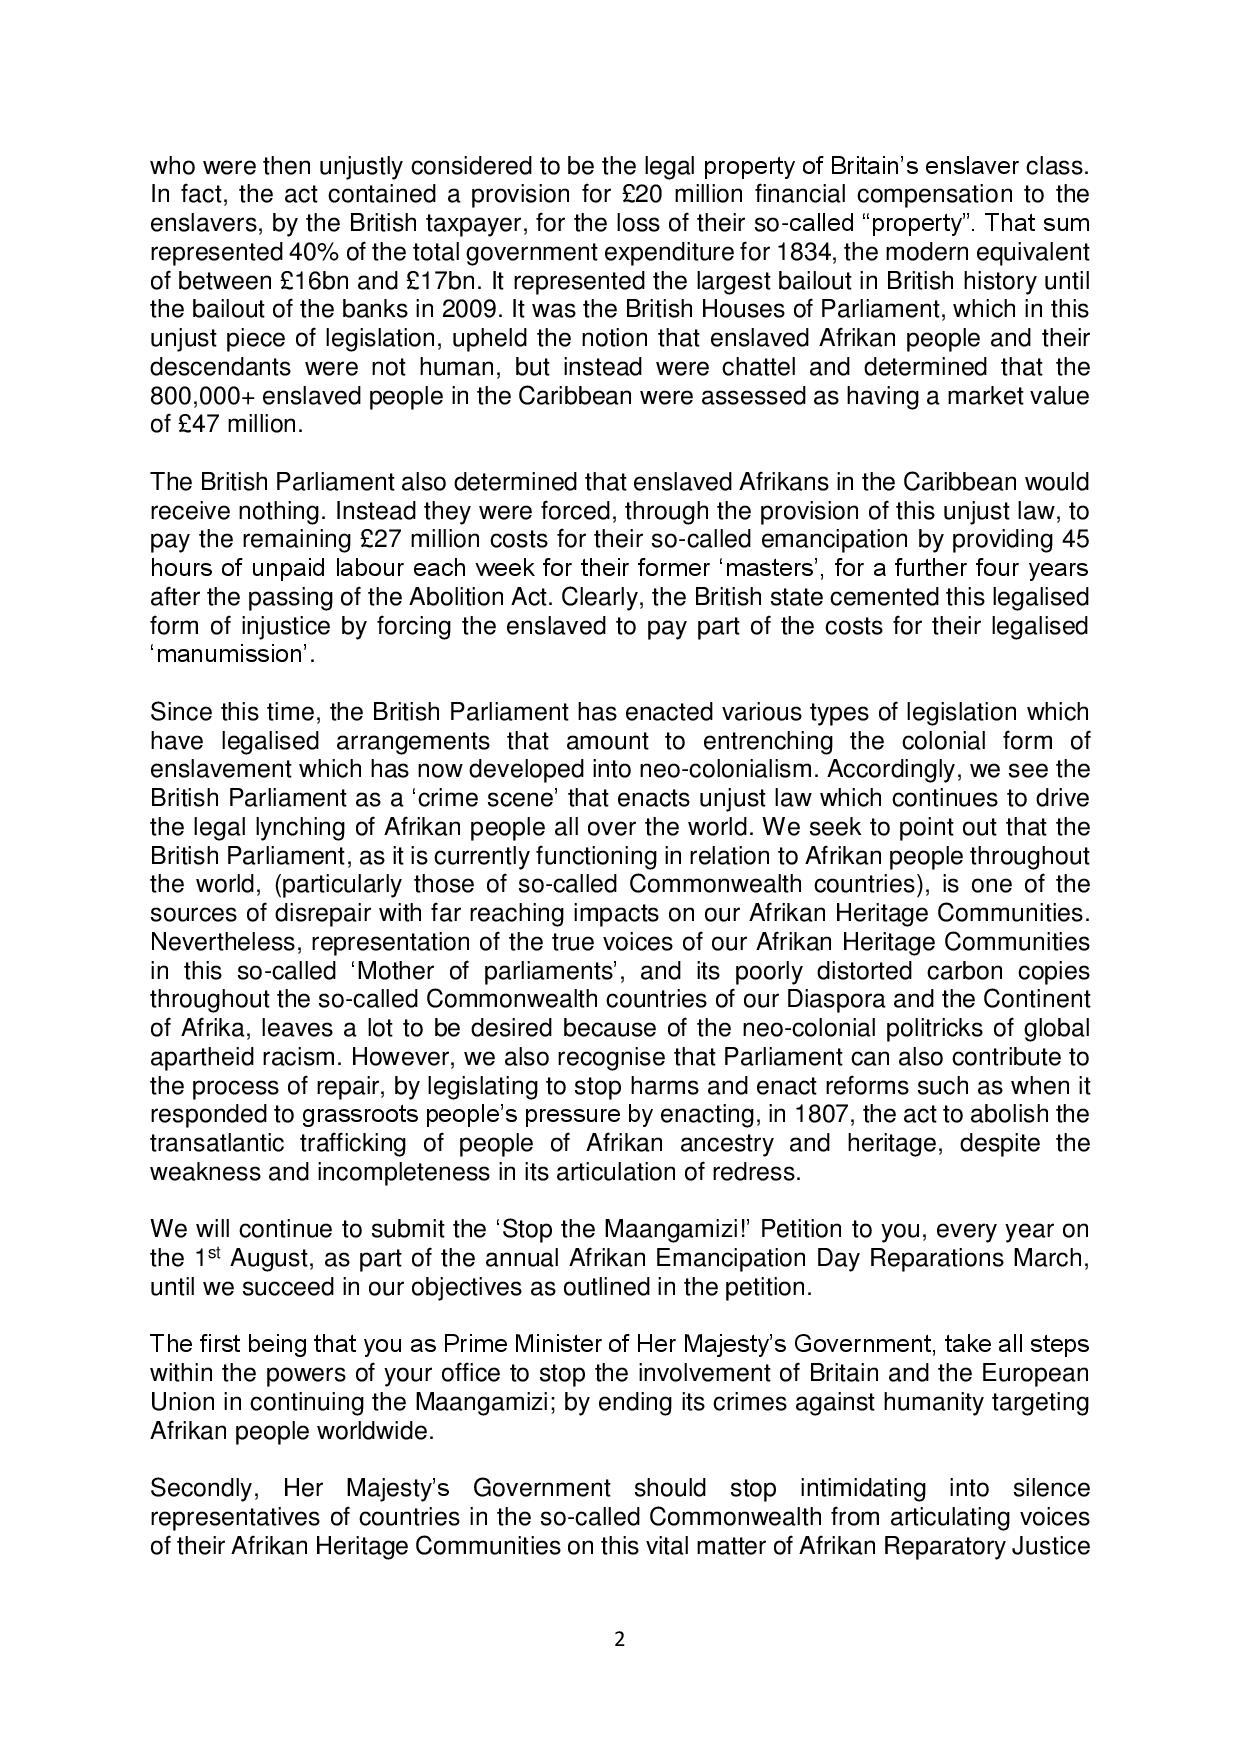 LETTER TO THERESA MAY 2018 FINAL-page-002